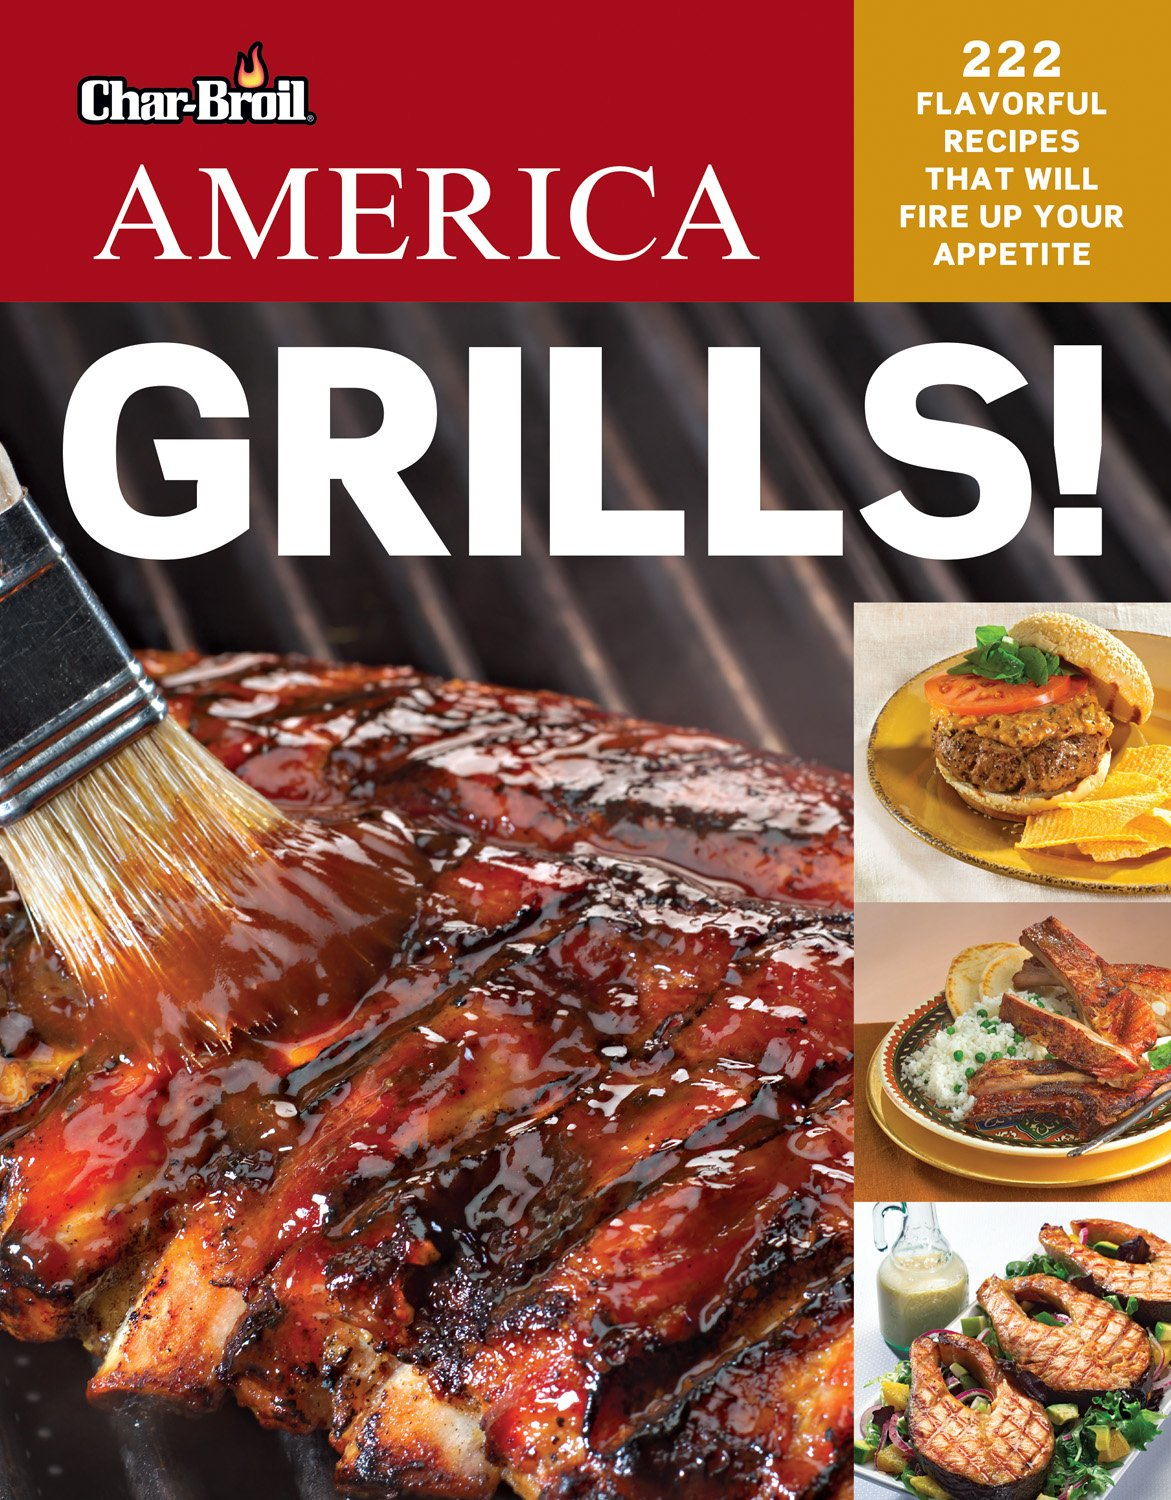 Char-Broil America Grills! 222 Flavorful Recipes That Will Fire Up Your Appetite (Creative Homeowner) Delicious, Easy-to-Follow Recipes for Snacks, Mains, Sides, & Desserts, with Over 250 Photos by Design Originals